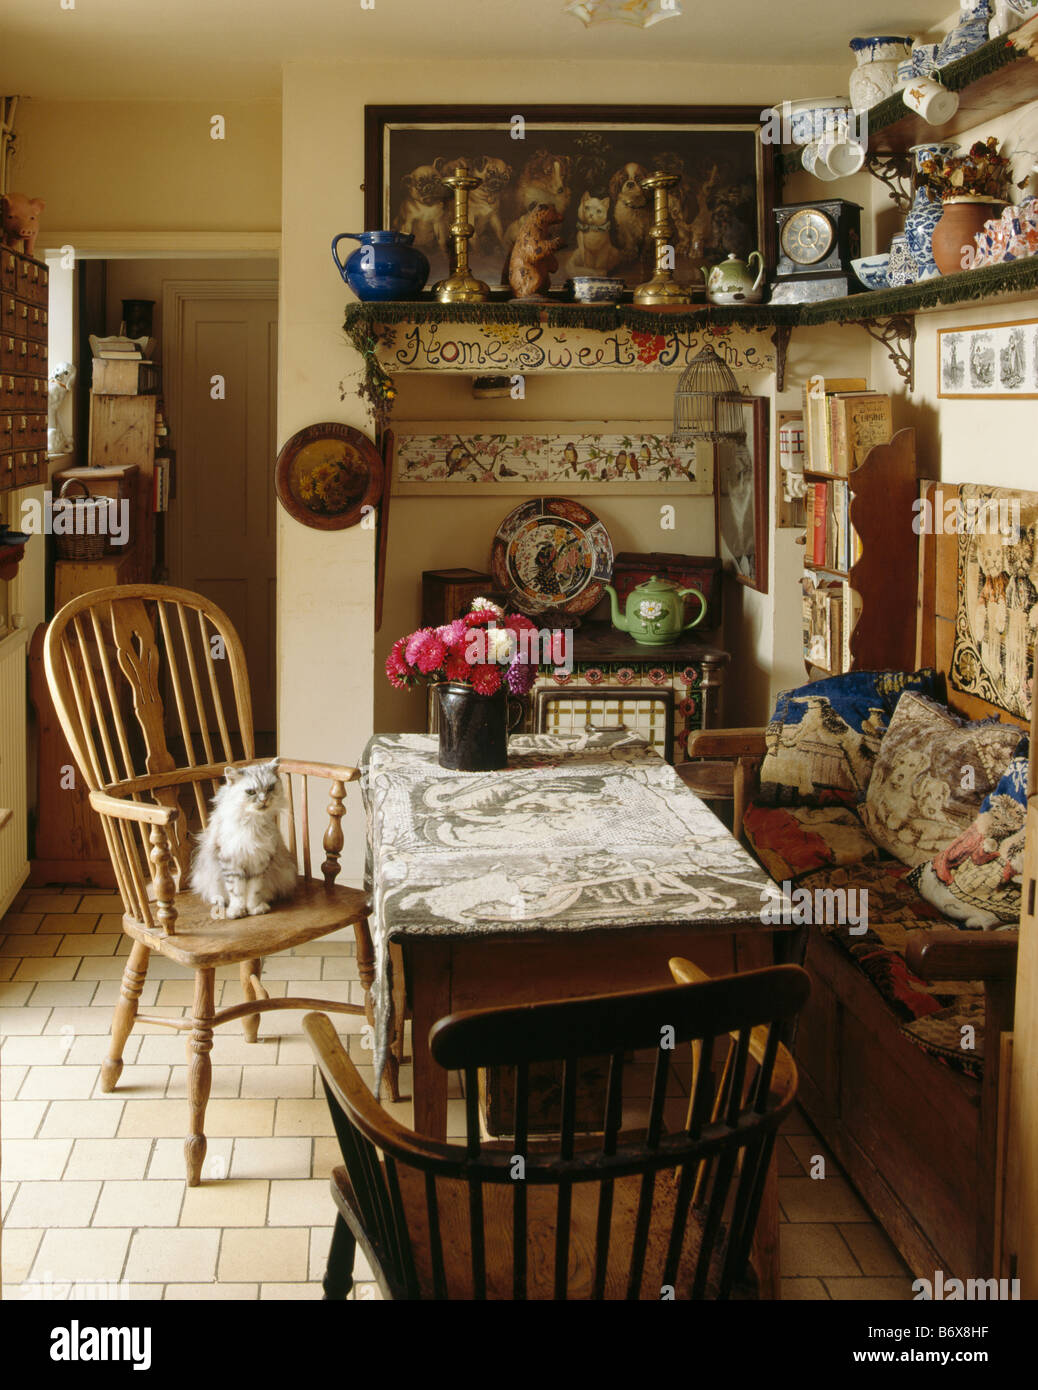 Cat On Antique Windsor Chair In Cluttered Cottage Dining Room With Tapestry  Cushions On Wooden Settle And Crockery On Shelves